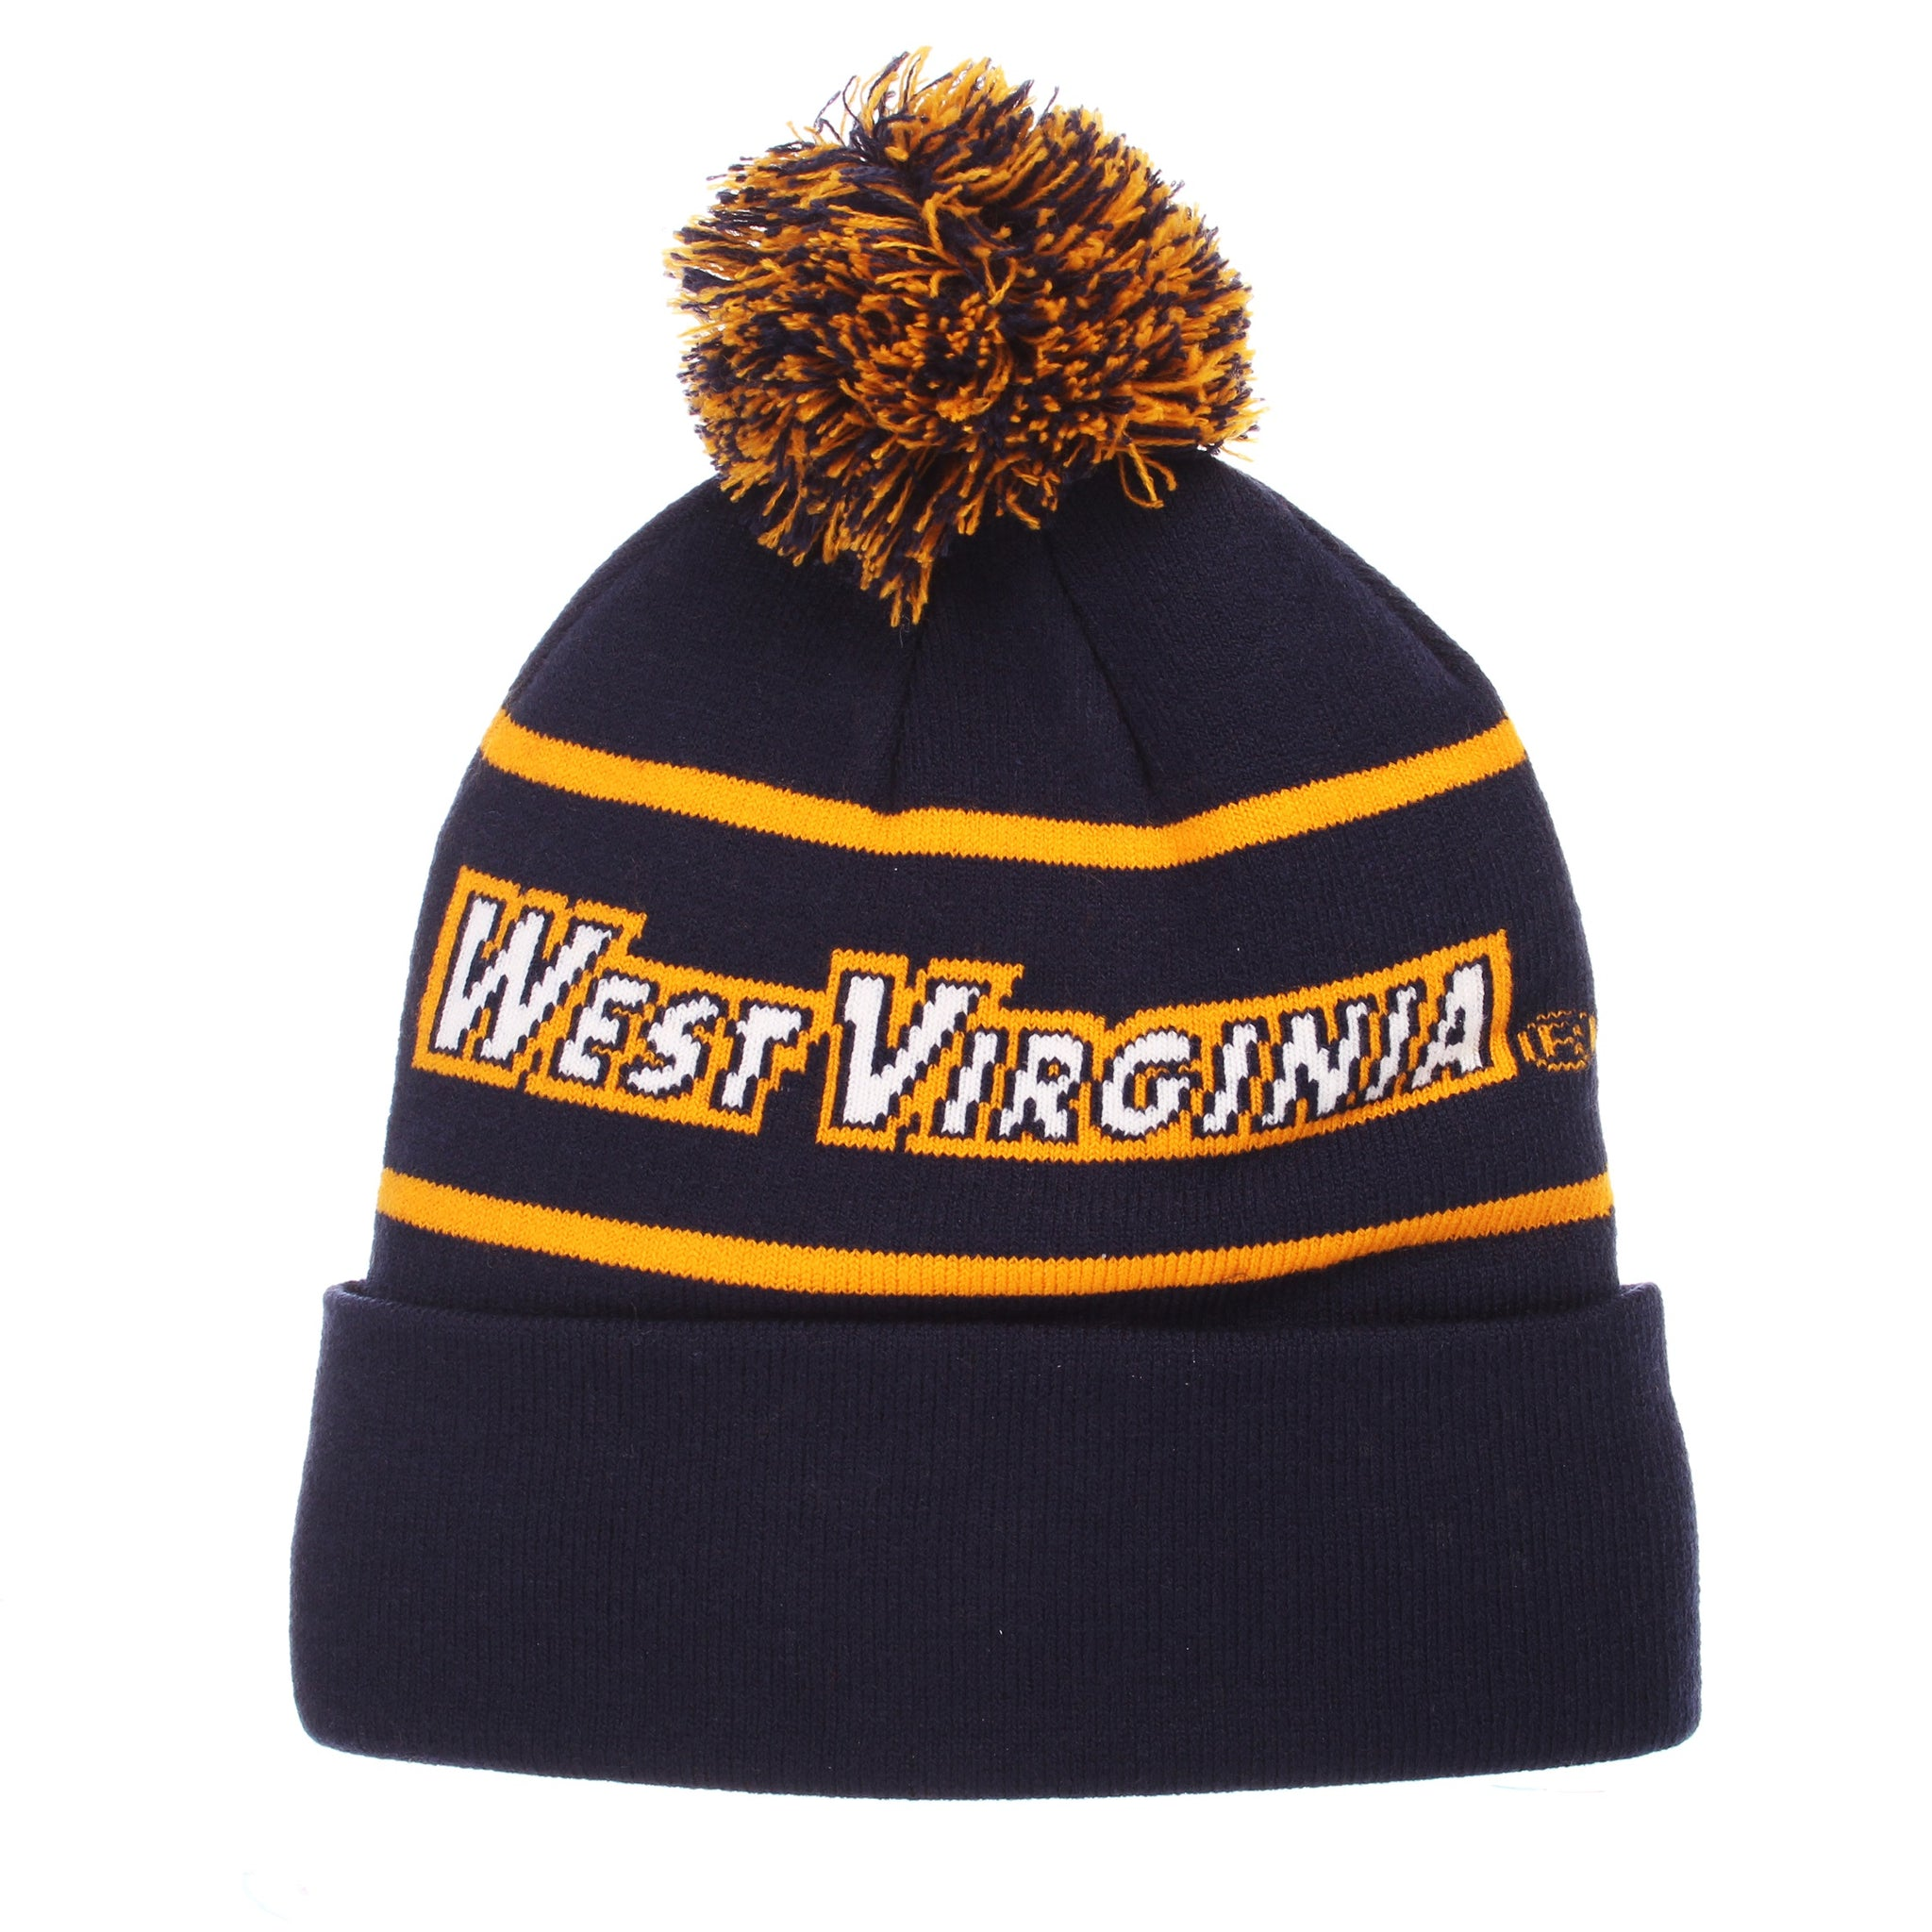 West Virginia Mountaineers Bandit Pom Knit Beanie – Sports Fanz e9c0c6b5a0a6